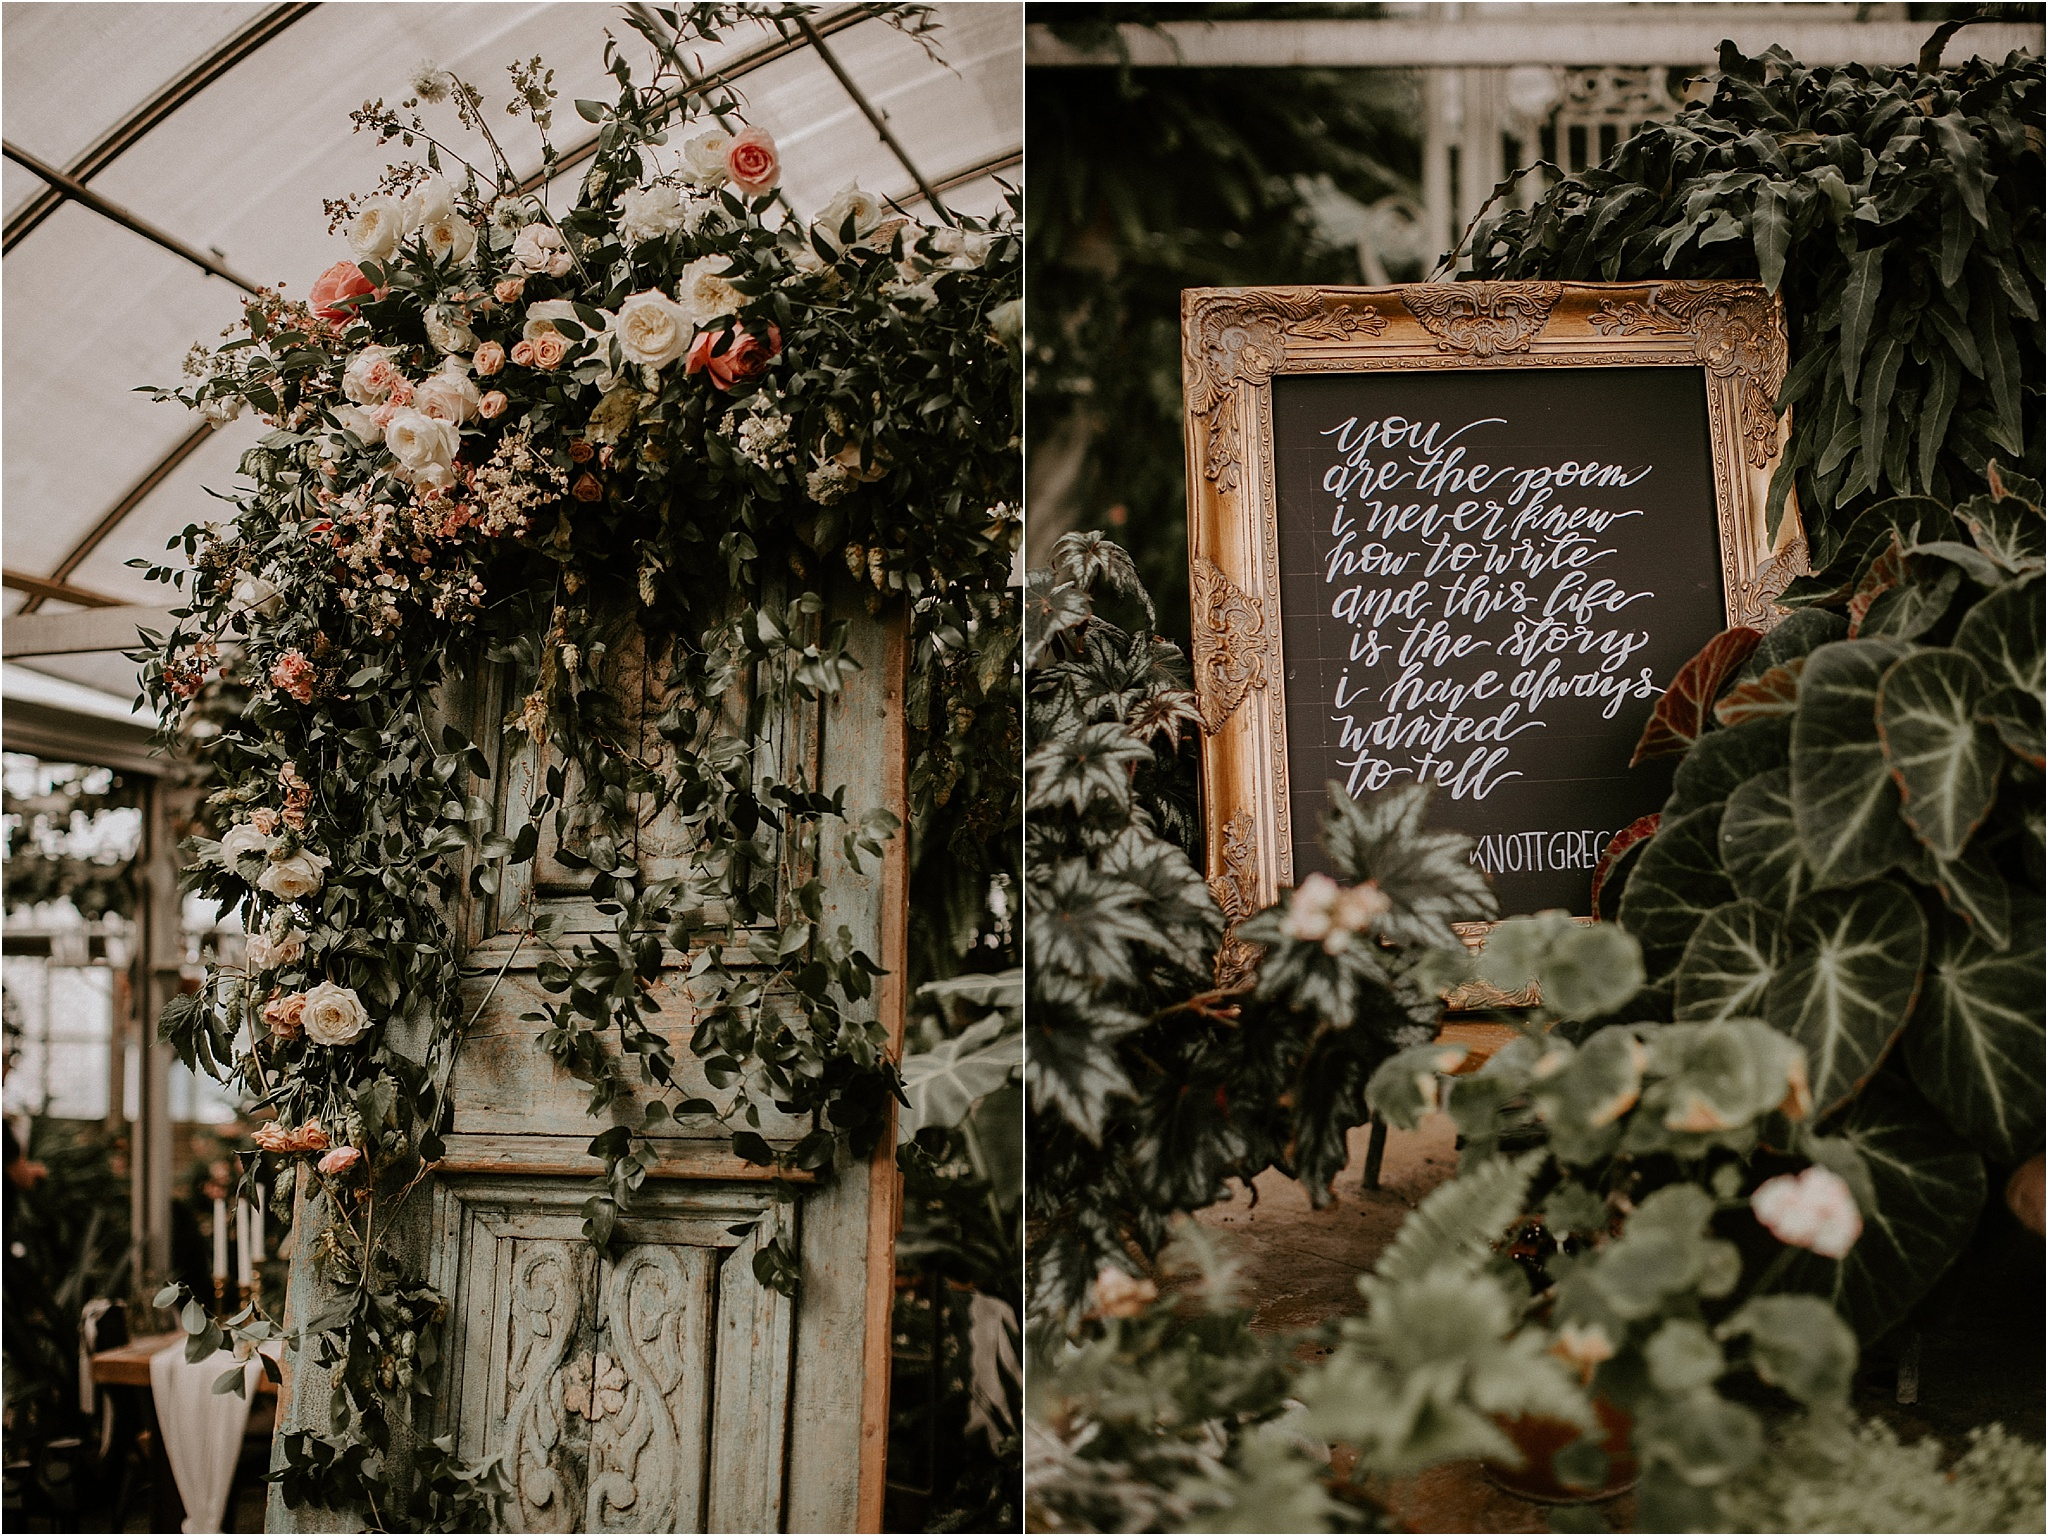 Sarah_Brookhart_Hortulus_Farm_Garden_and_Nursey_Wedding_Photographer_0042.jpg